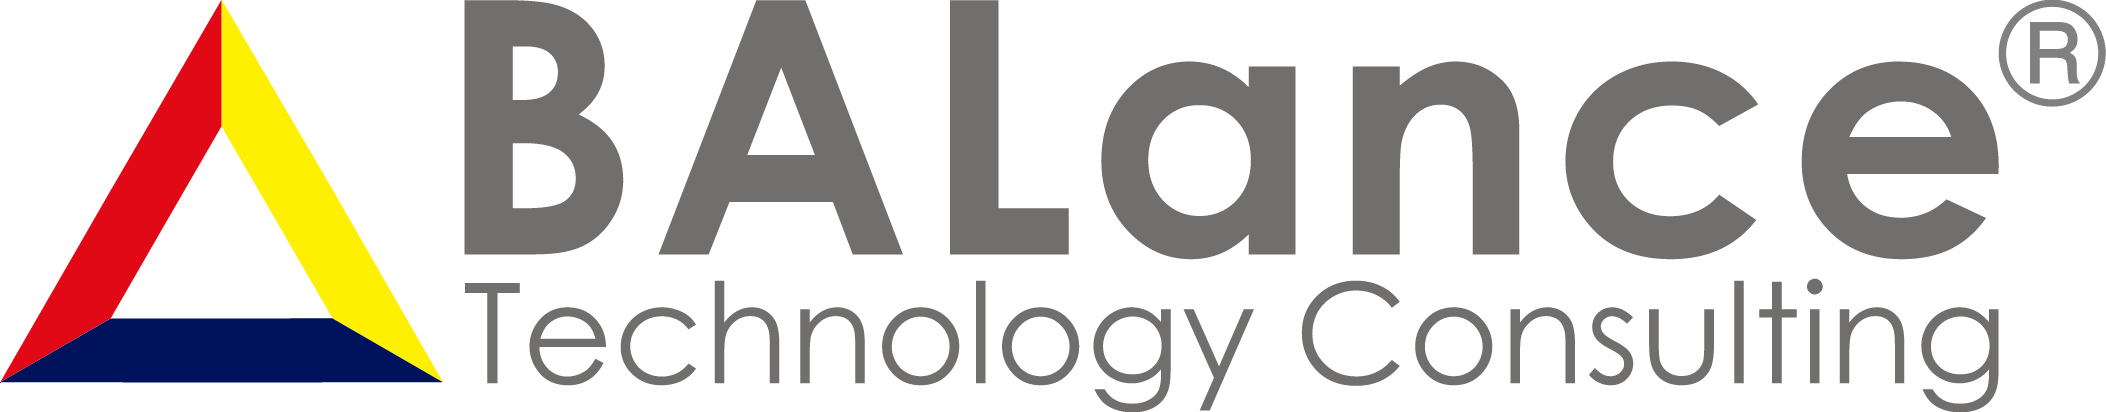 BALance Technology Consulting GmbH logo